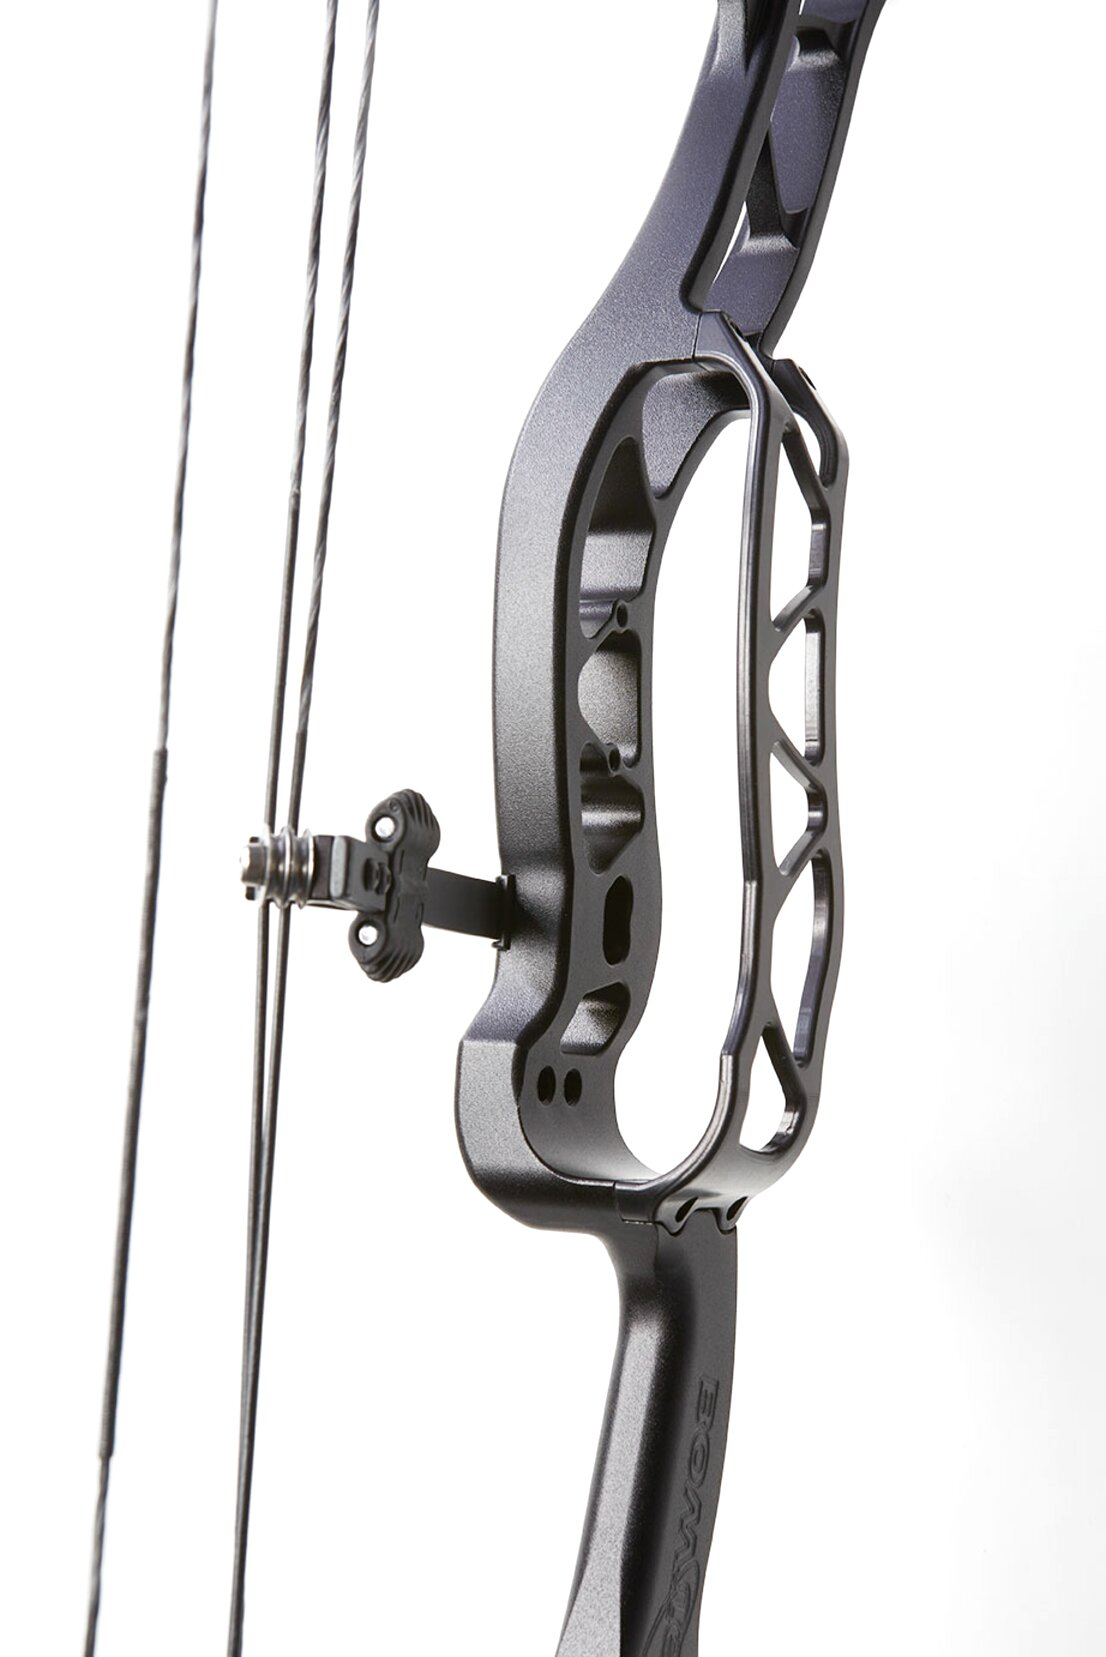 Bowtech Cam Cams over 30 check out pics new and used